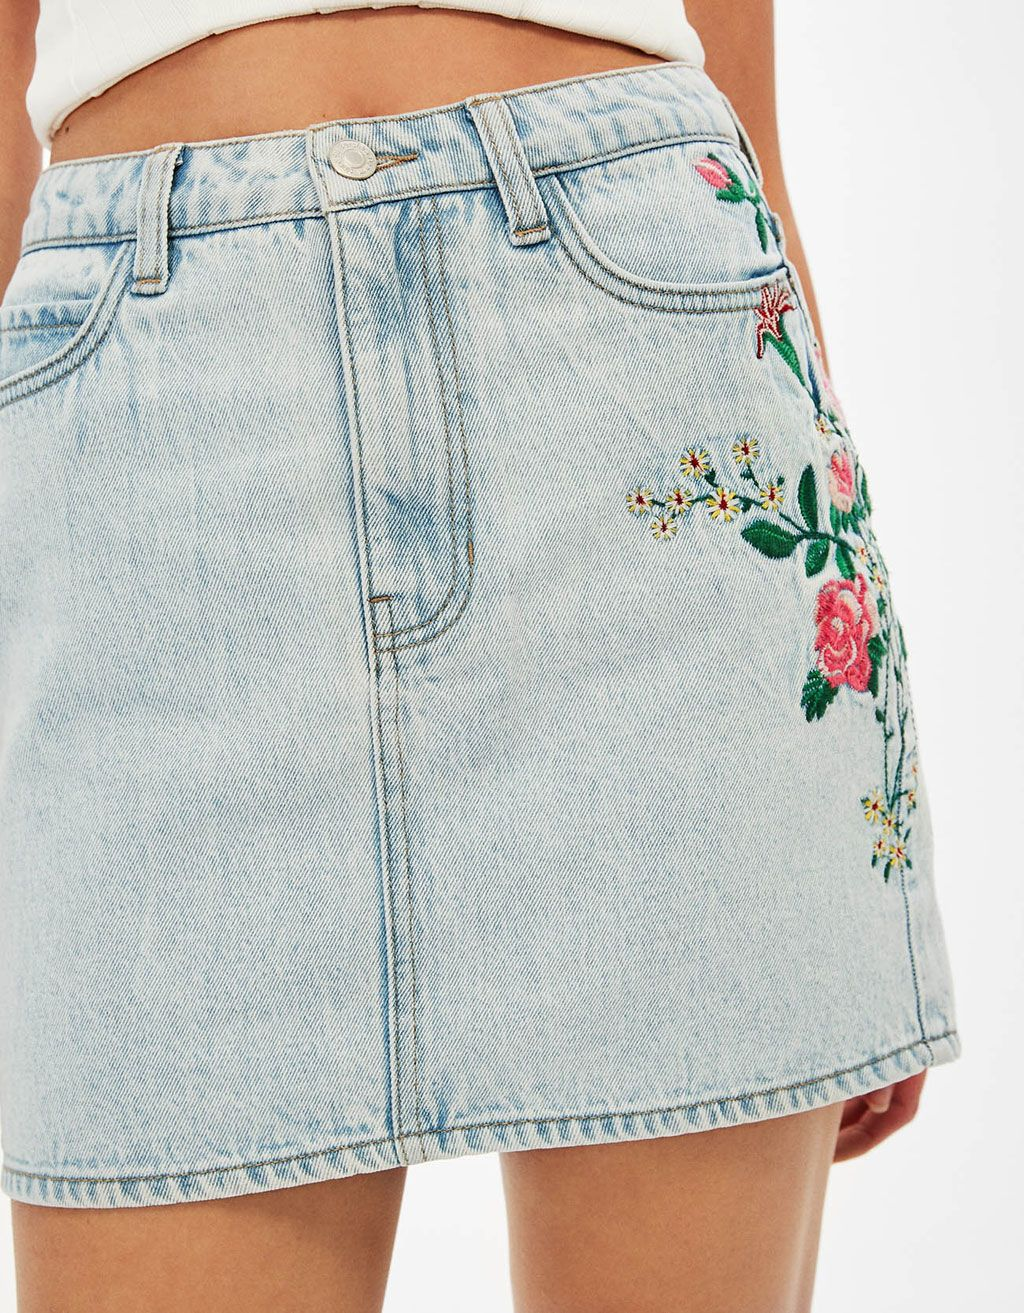 2422ad7296 Denim mini skirt with floral embroidery. Discover this and many more items  in Bershka with new products every week